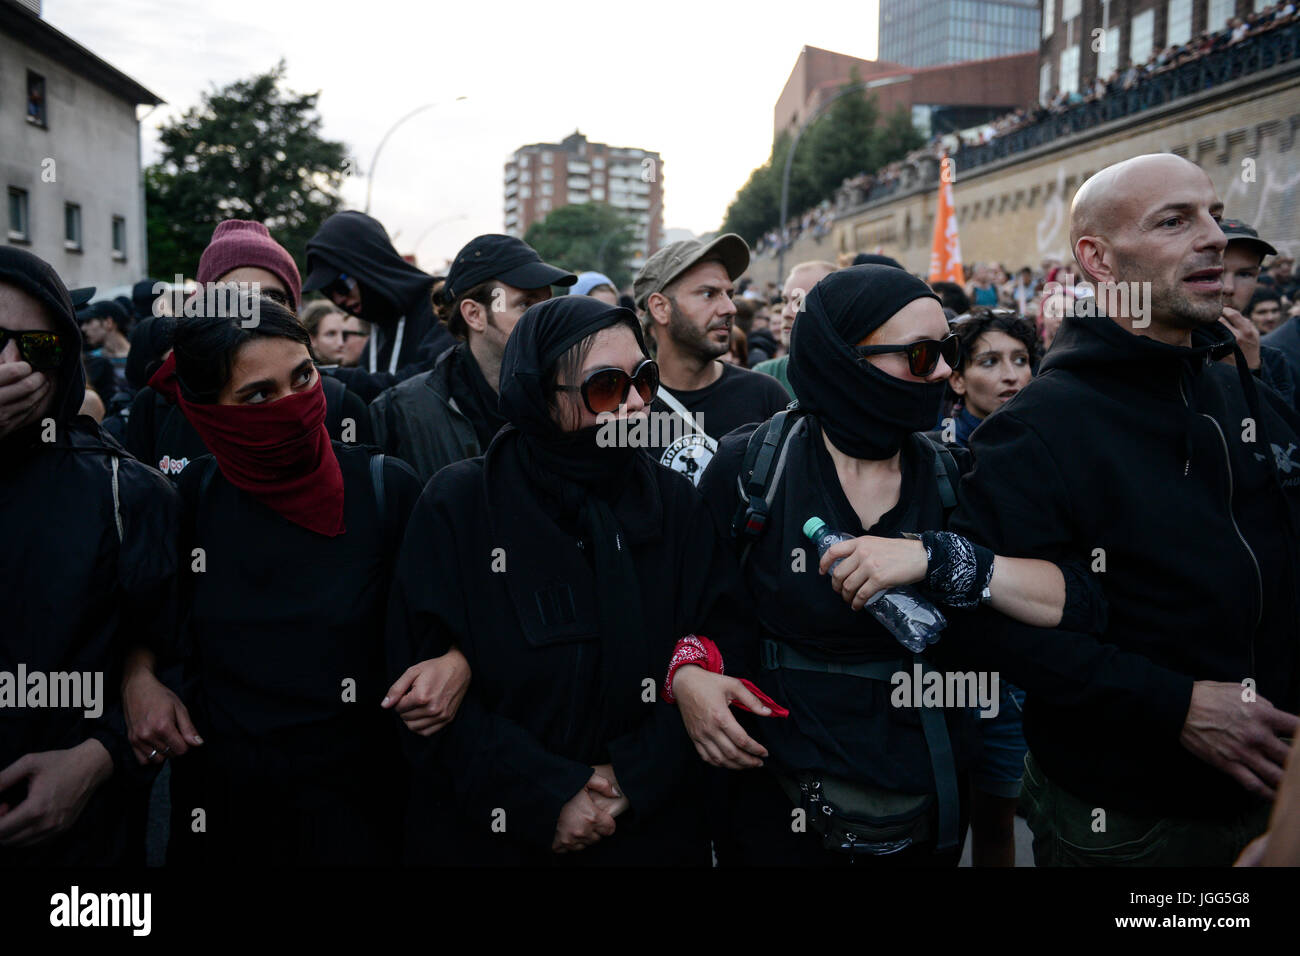 "Hamburg, Germany. 6th July, 2017. GERMANY, Hamburg, protest rally ""WELCOME TO HELL"" against G-20 summit in July Stock Photo"